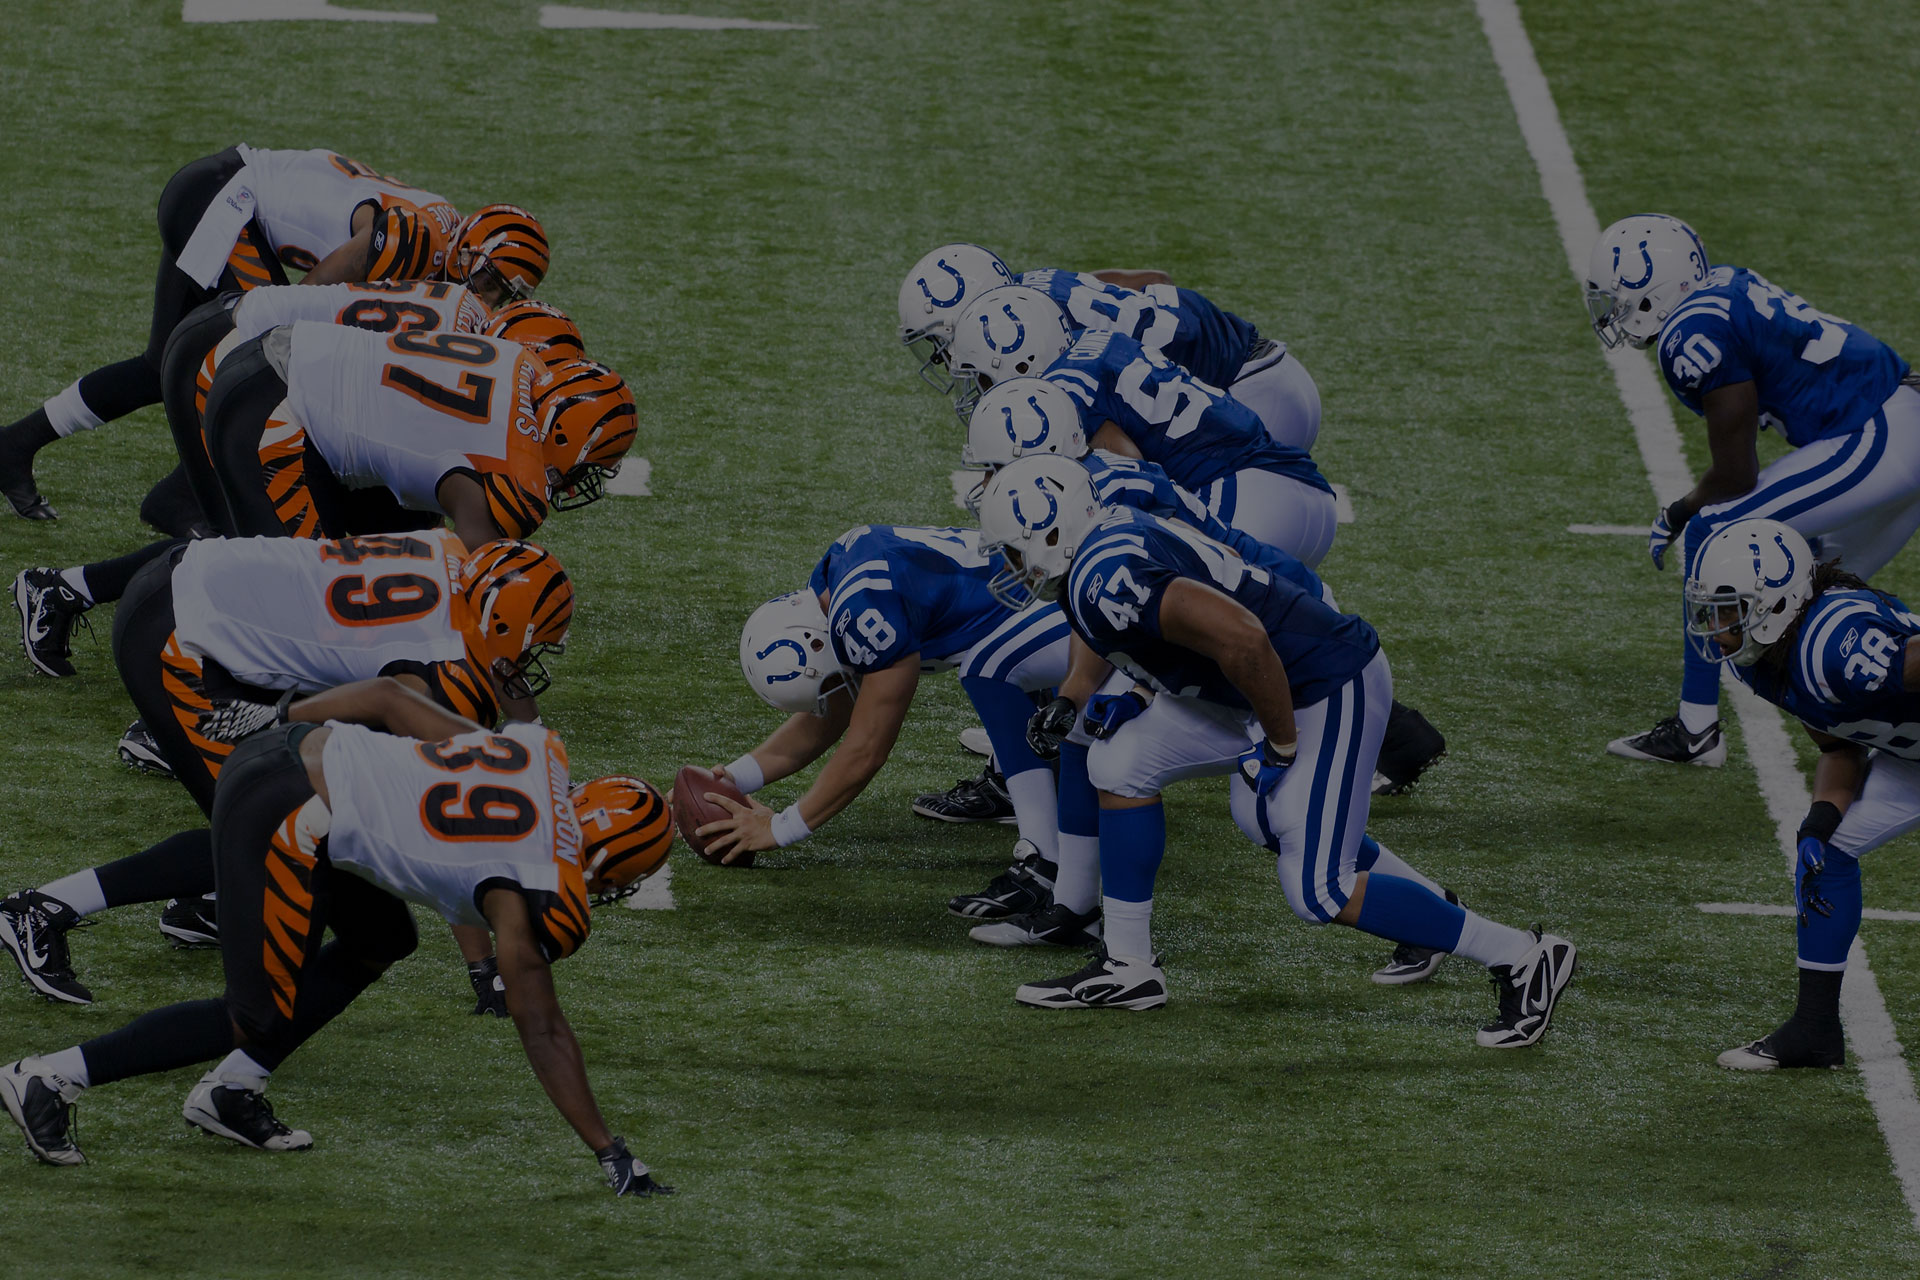 Bengals and Colts line-up during football game between Indianapolis Colts and Cincinnati Bengals on September 2,